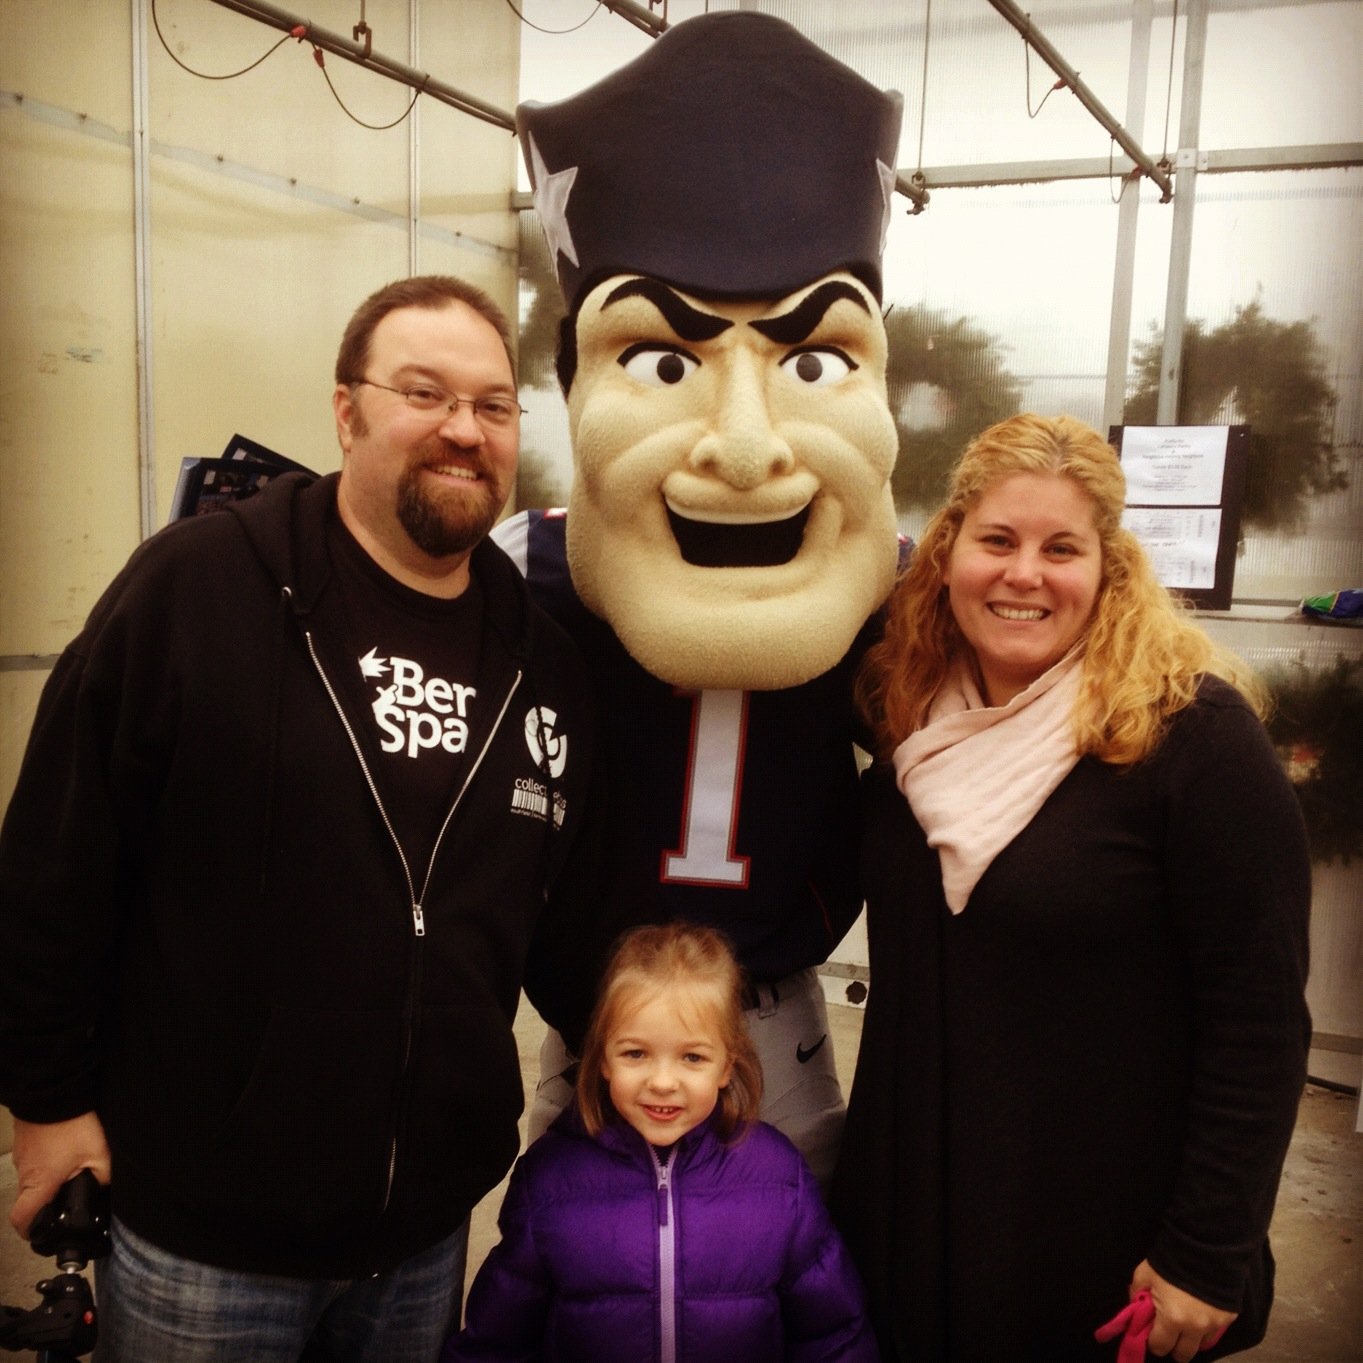 Eva and I with Pat the Patriot and Sarah Achin